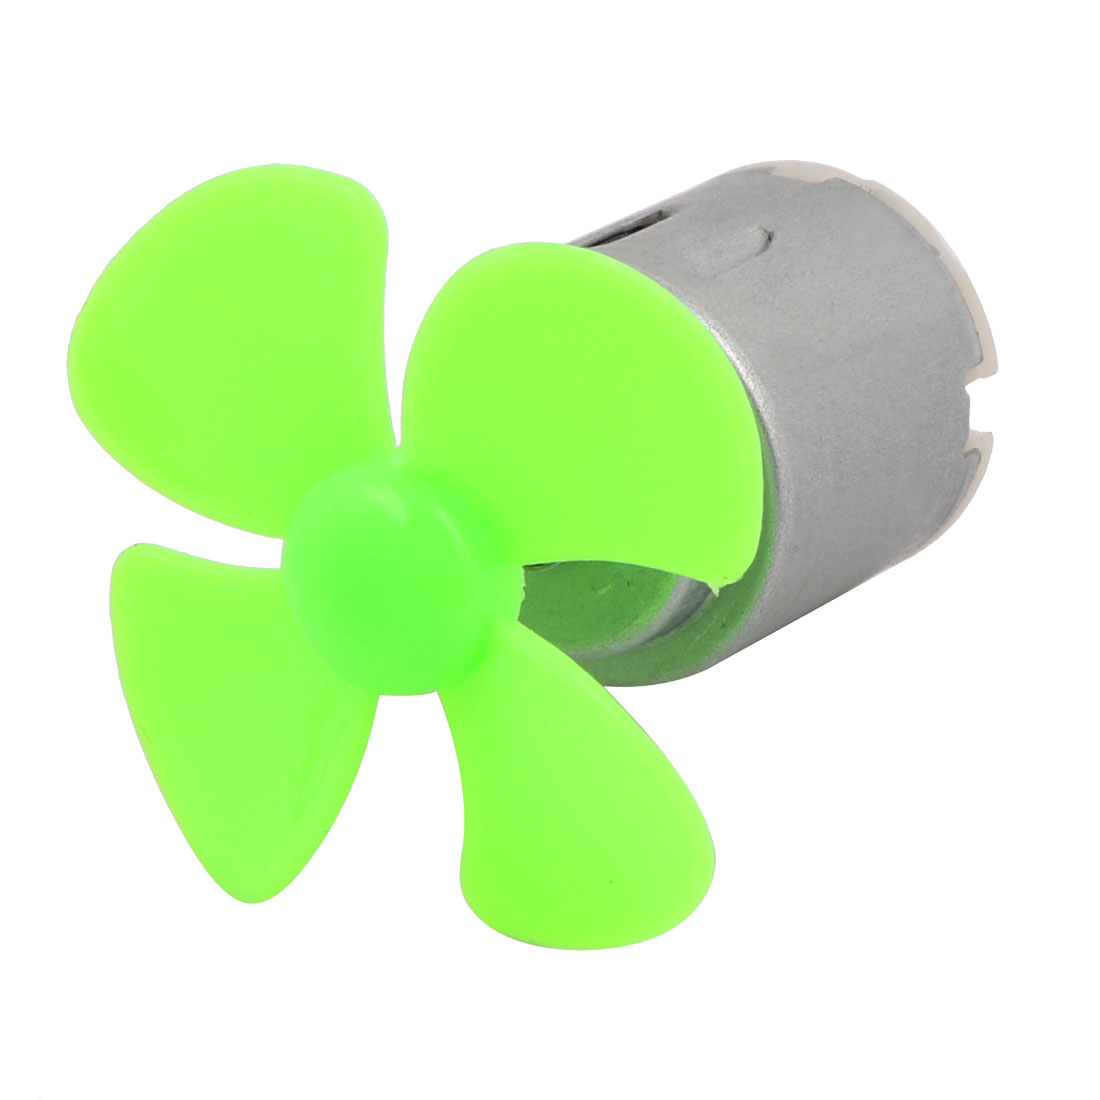 DC 3V 0.13A 21500RPM Strong Force Motor 4 Vanes 40mm Green Propeller for RC Aircraft